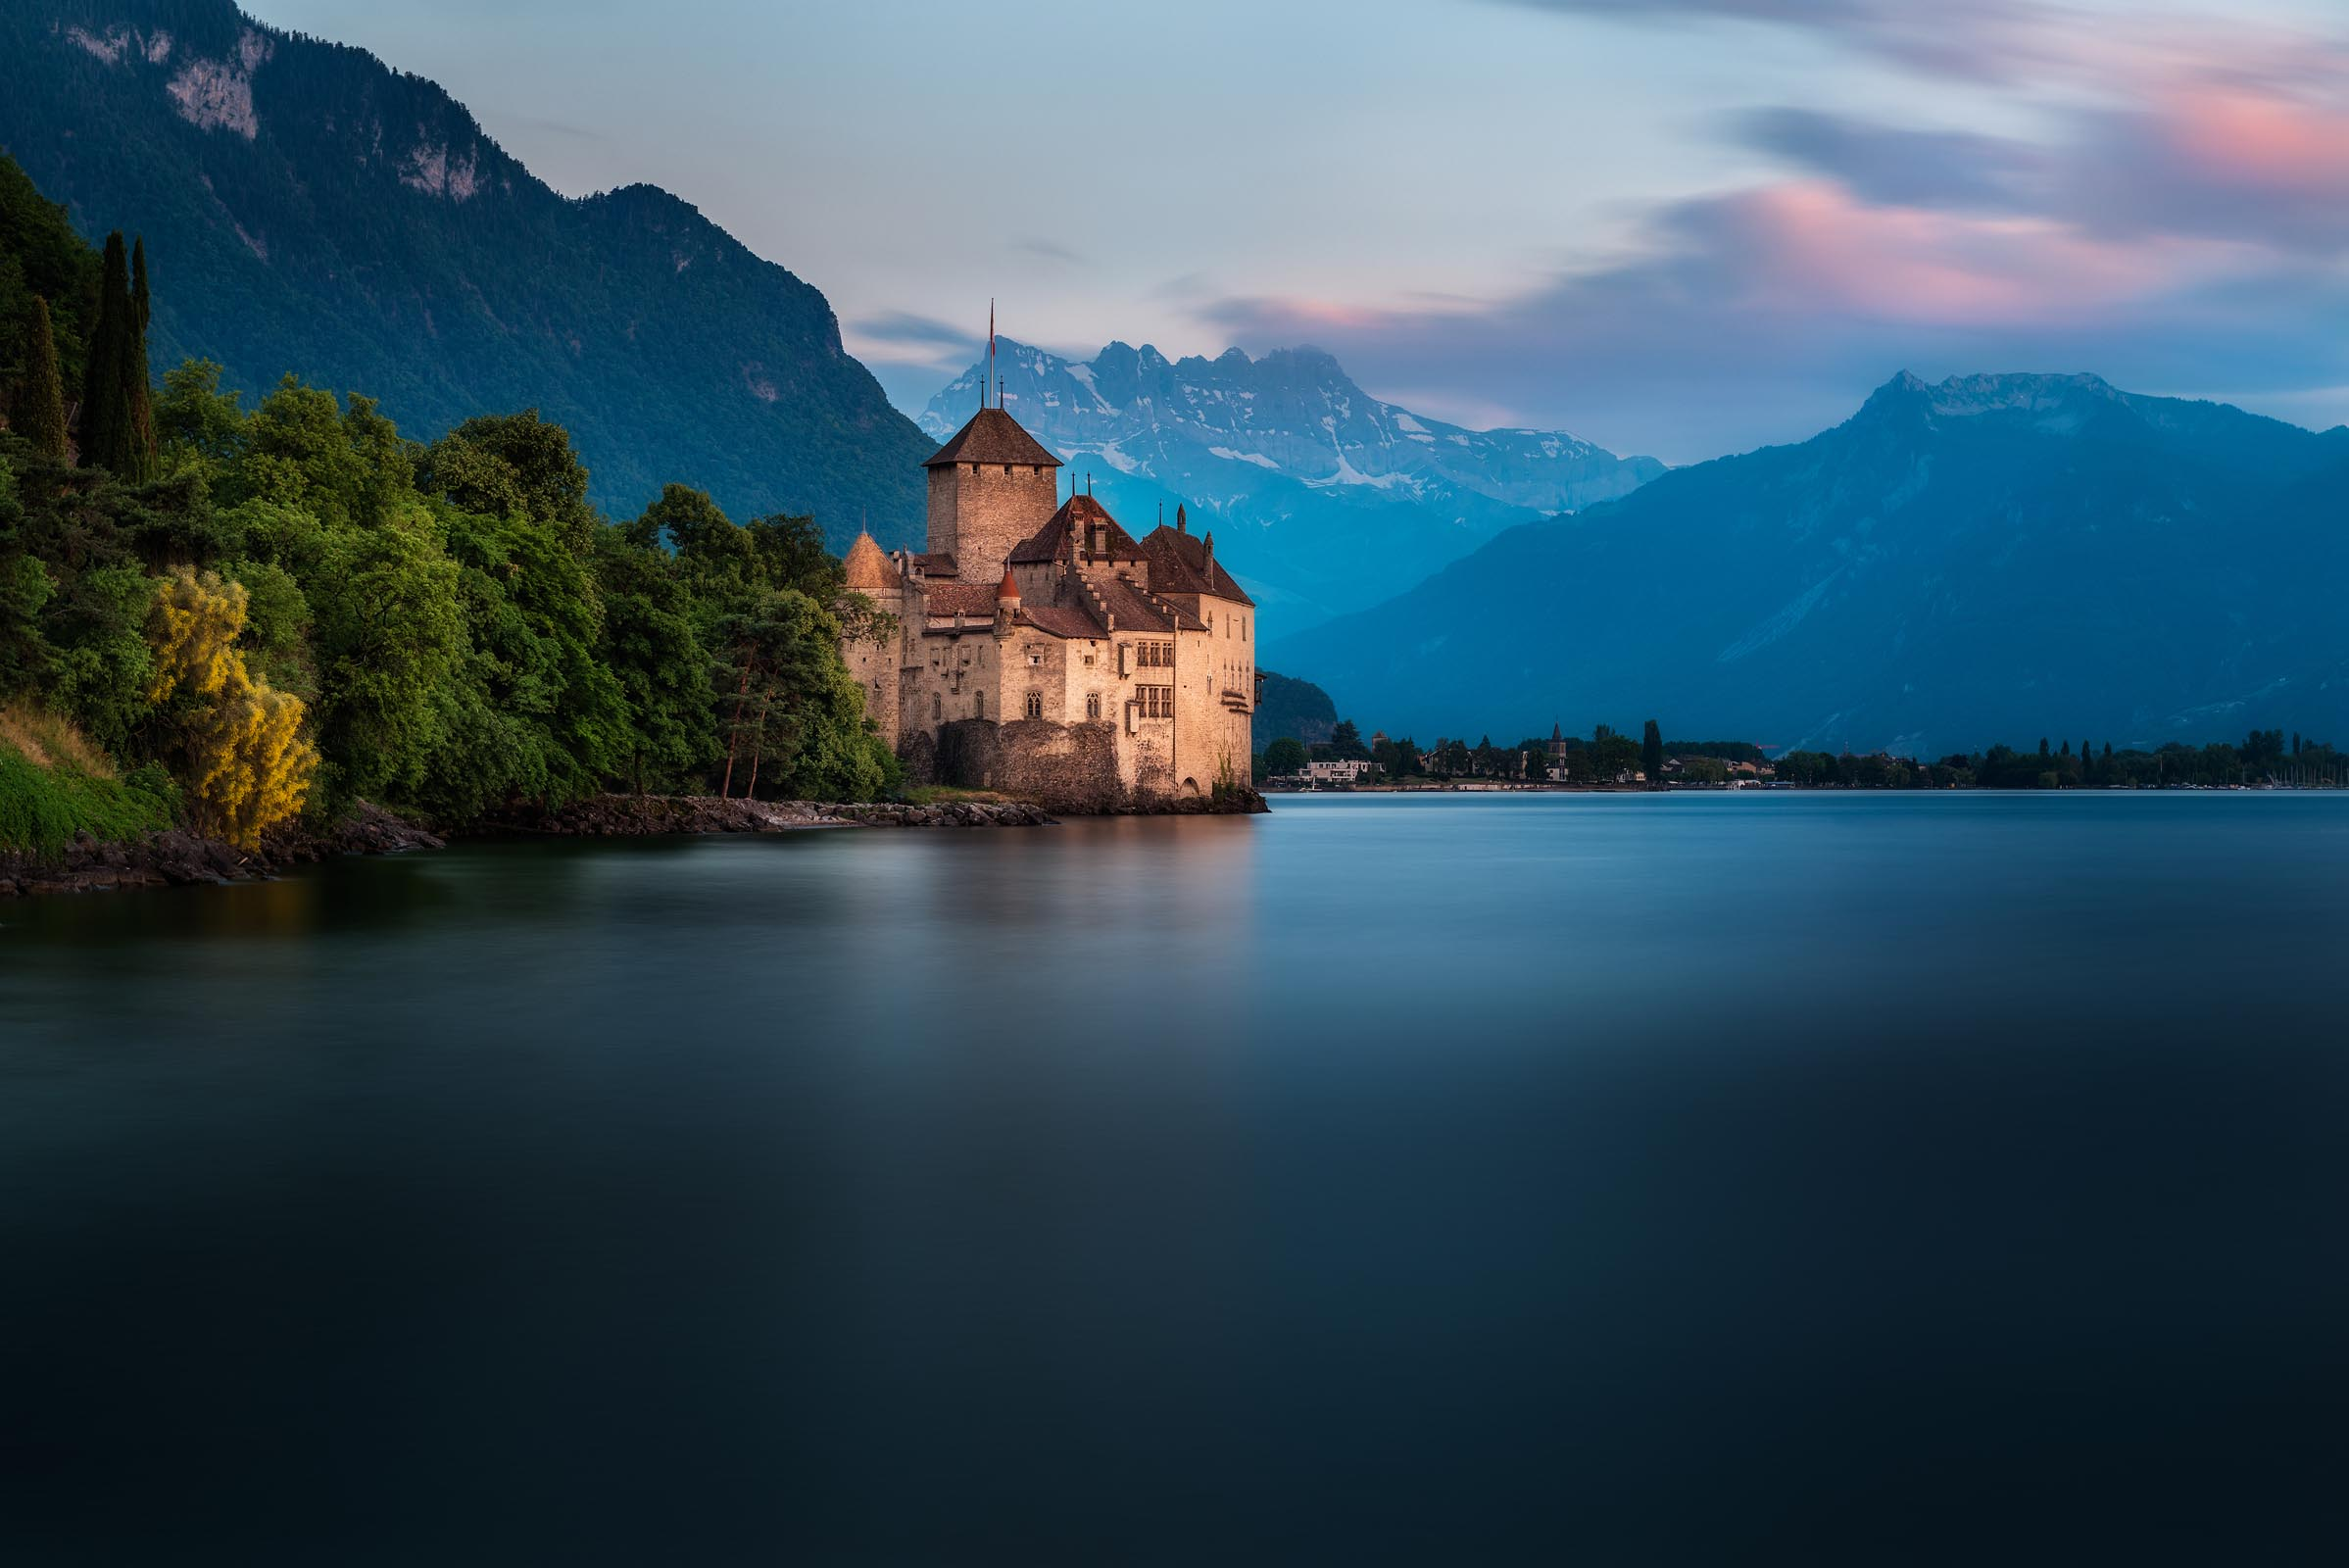 Photograph of Chillon Castle in Lake Geneva, Switzerland by Brent Goldman Photography